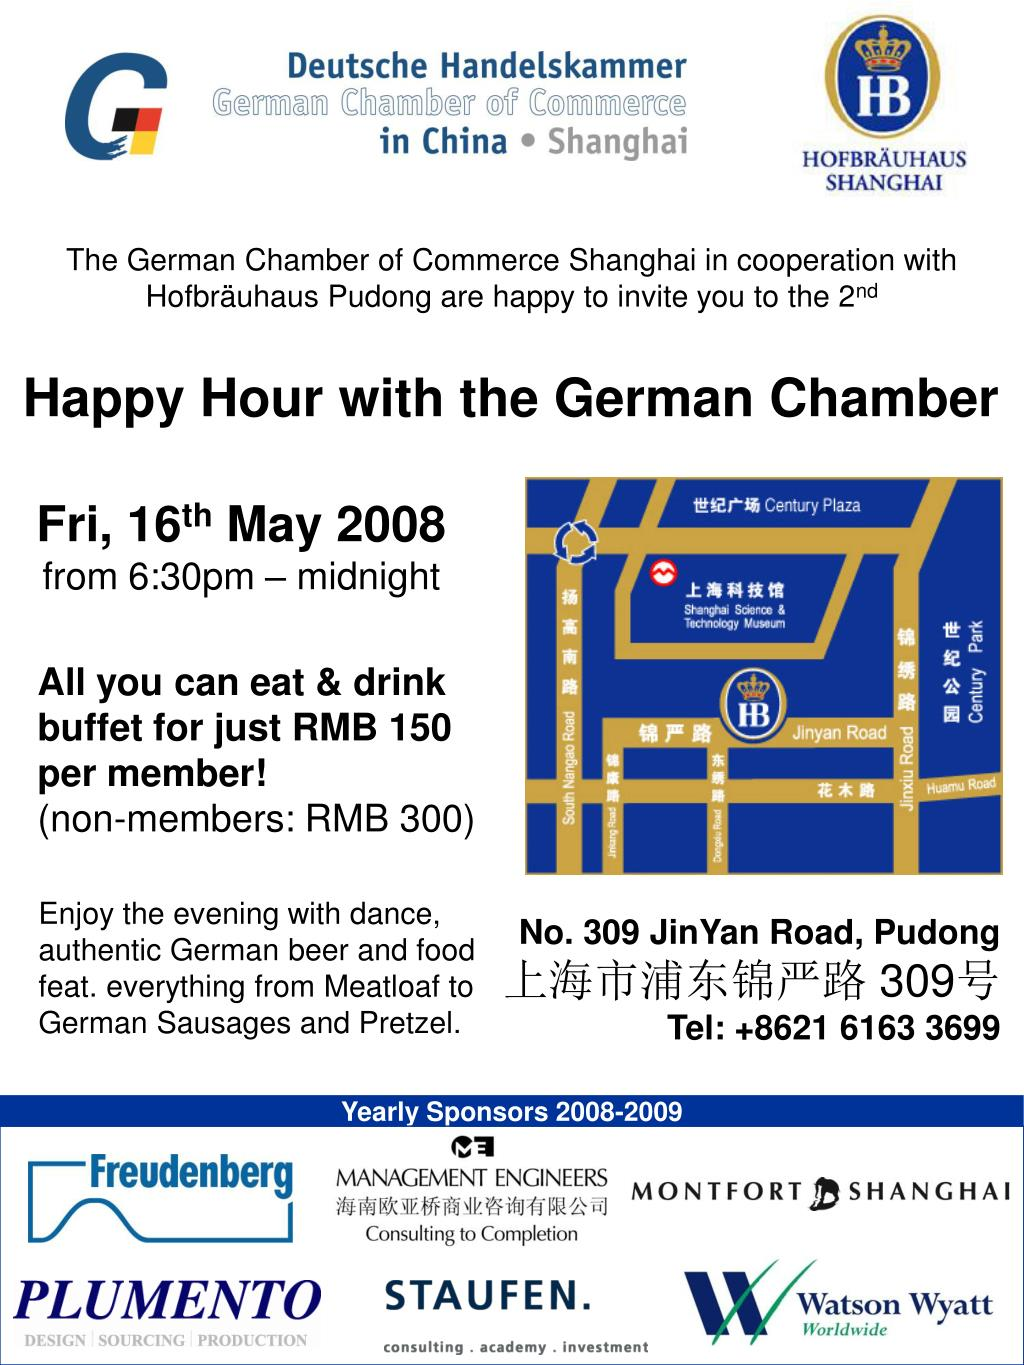 The German Chamber of Commerce Shanghai in cooperation with Hofbräuhaus Pudong are happy to invite you to the 2